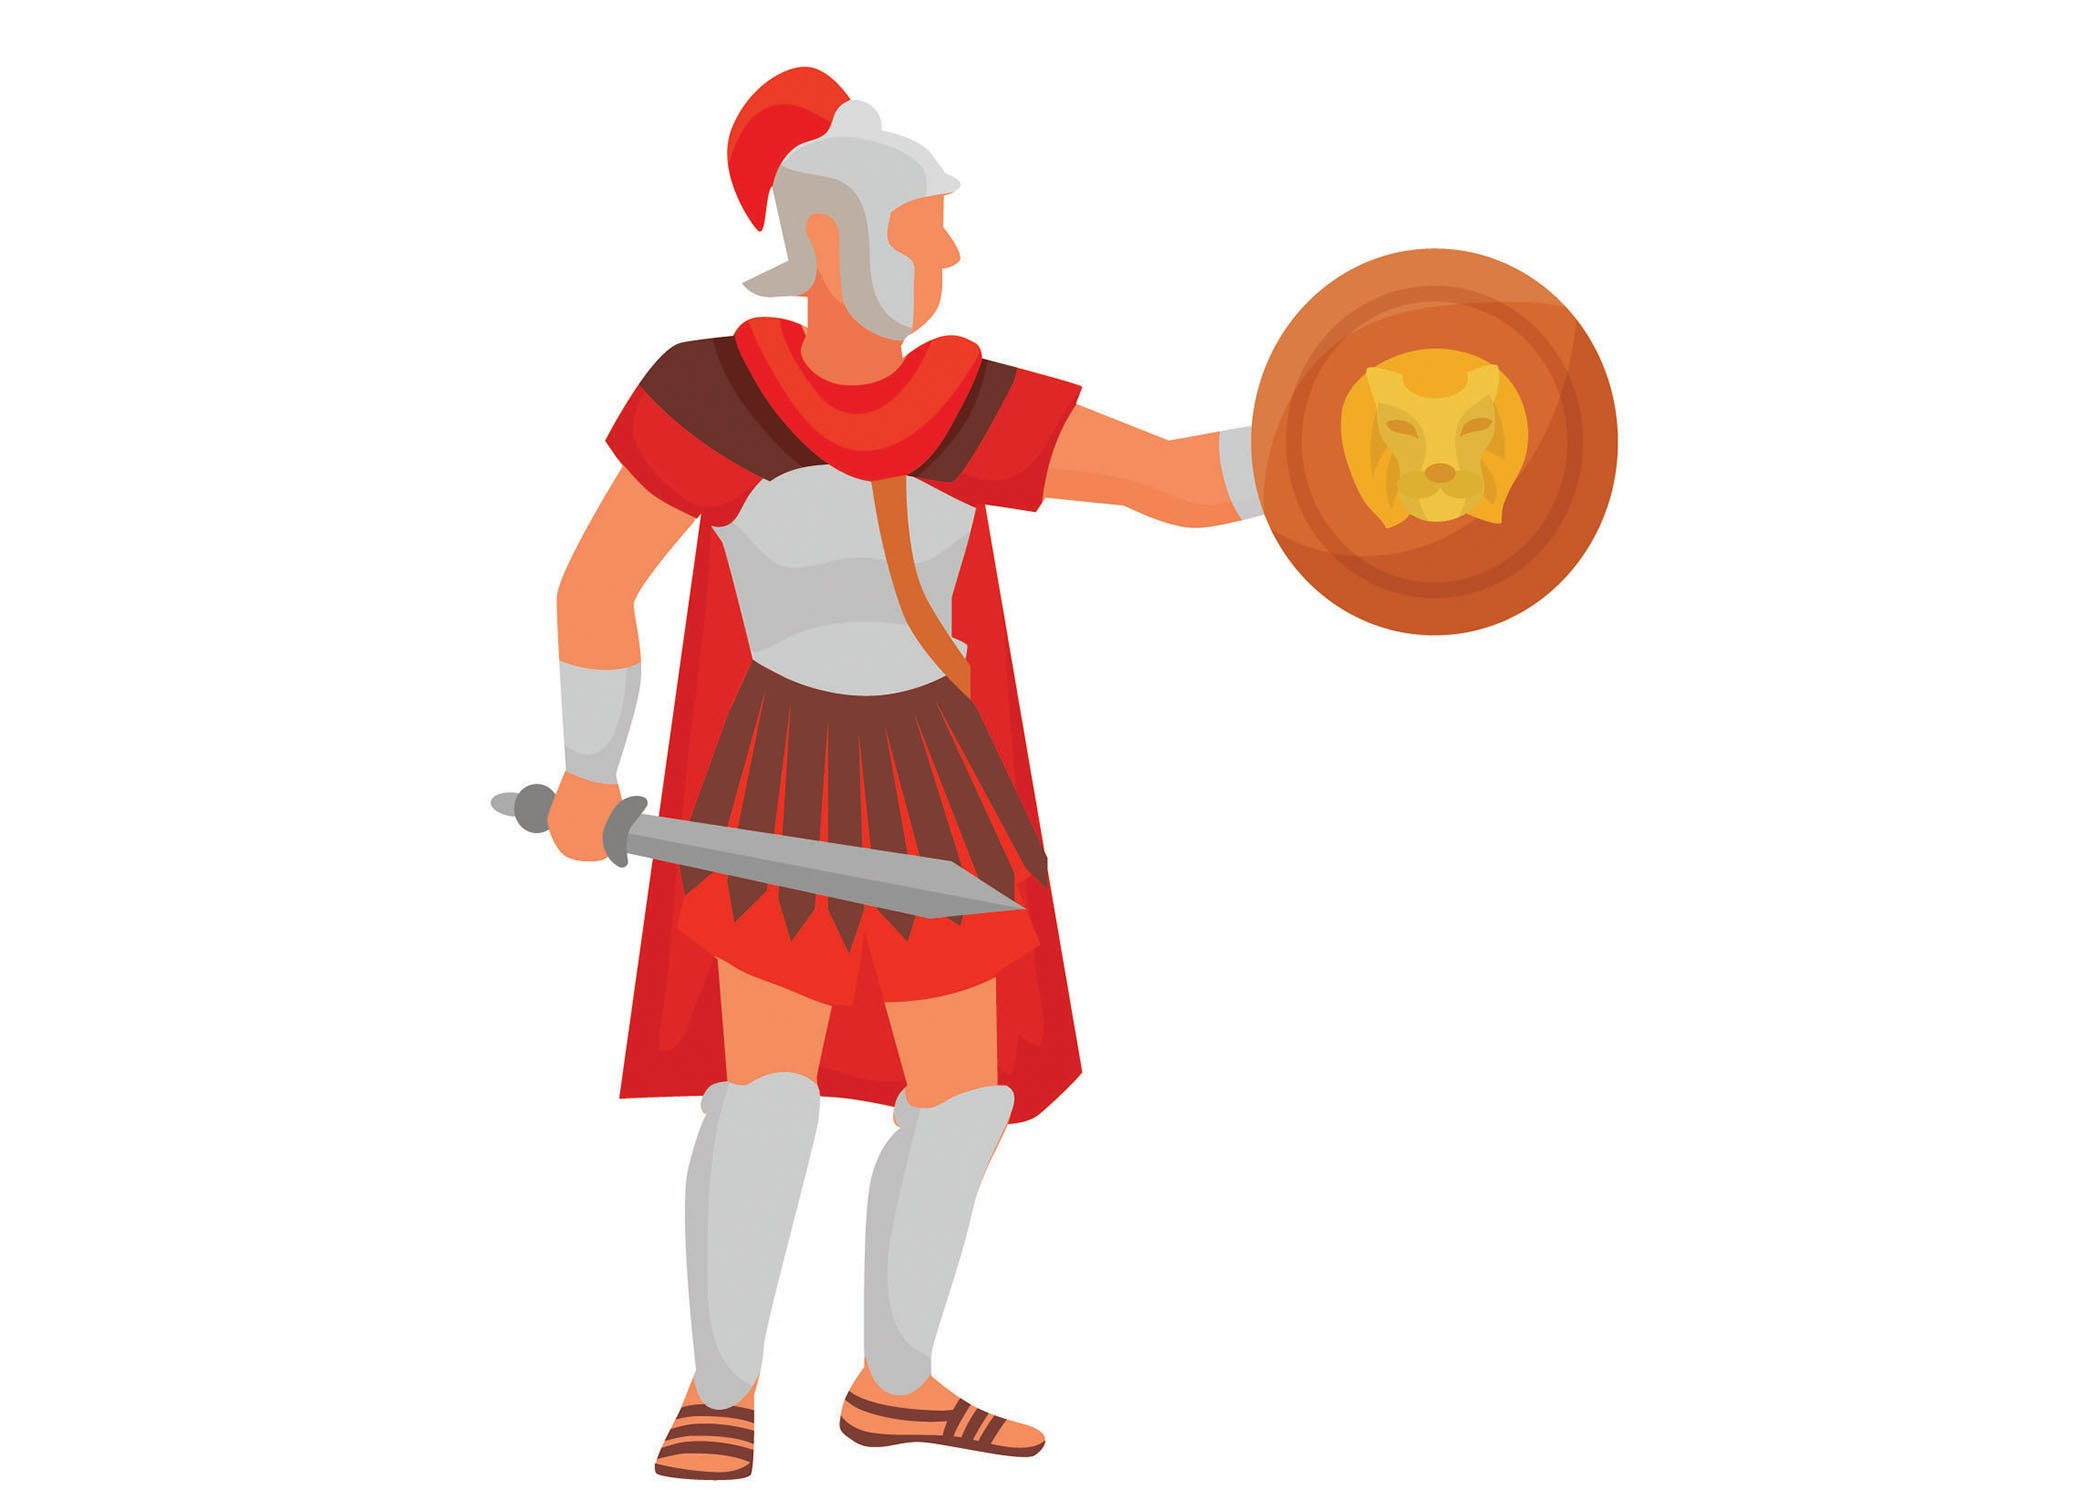 Gallus gladiator in ancient Rome